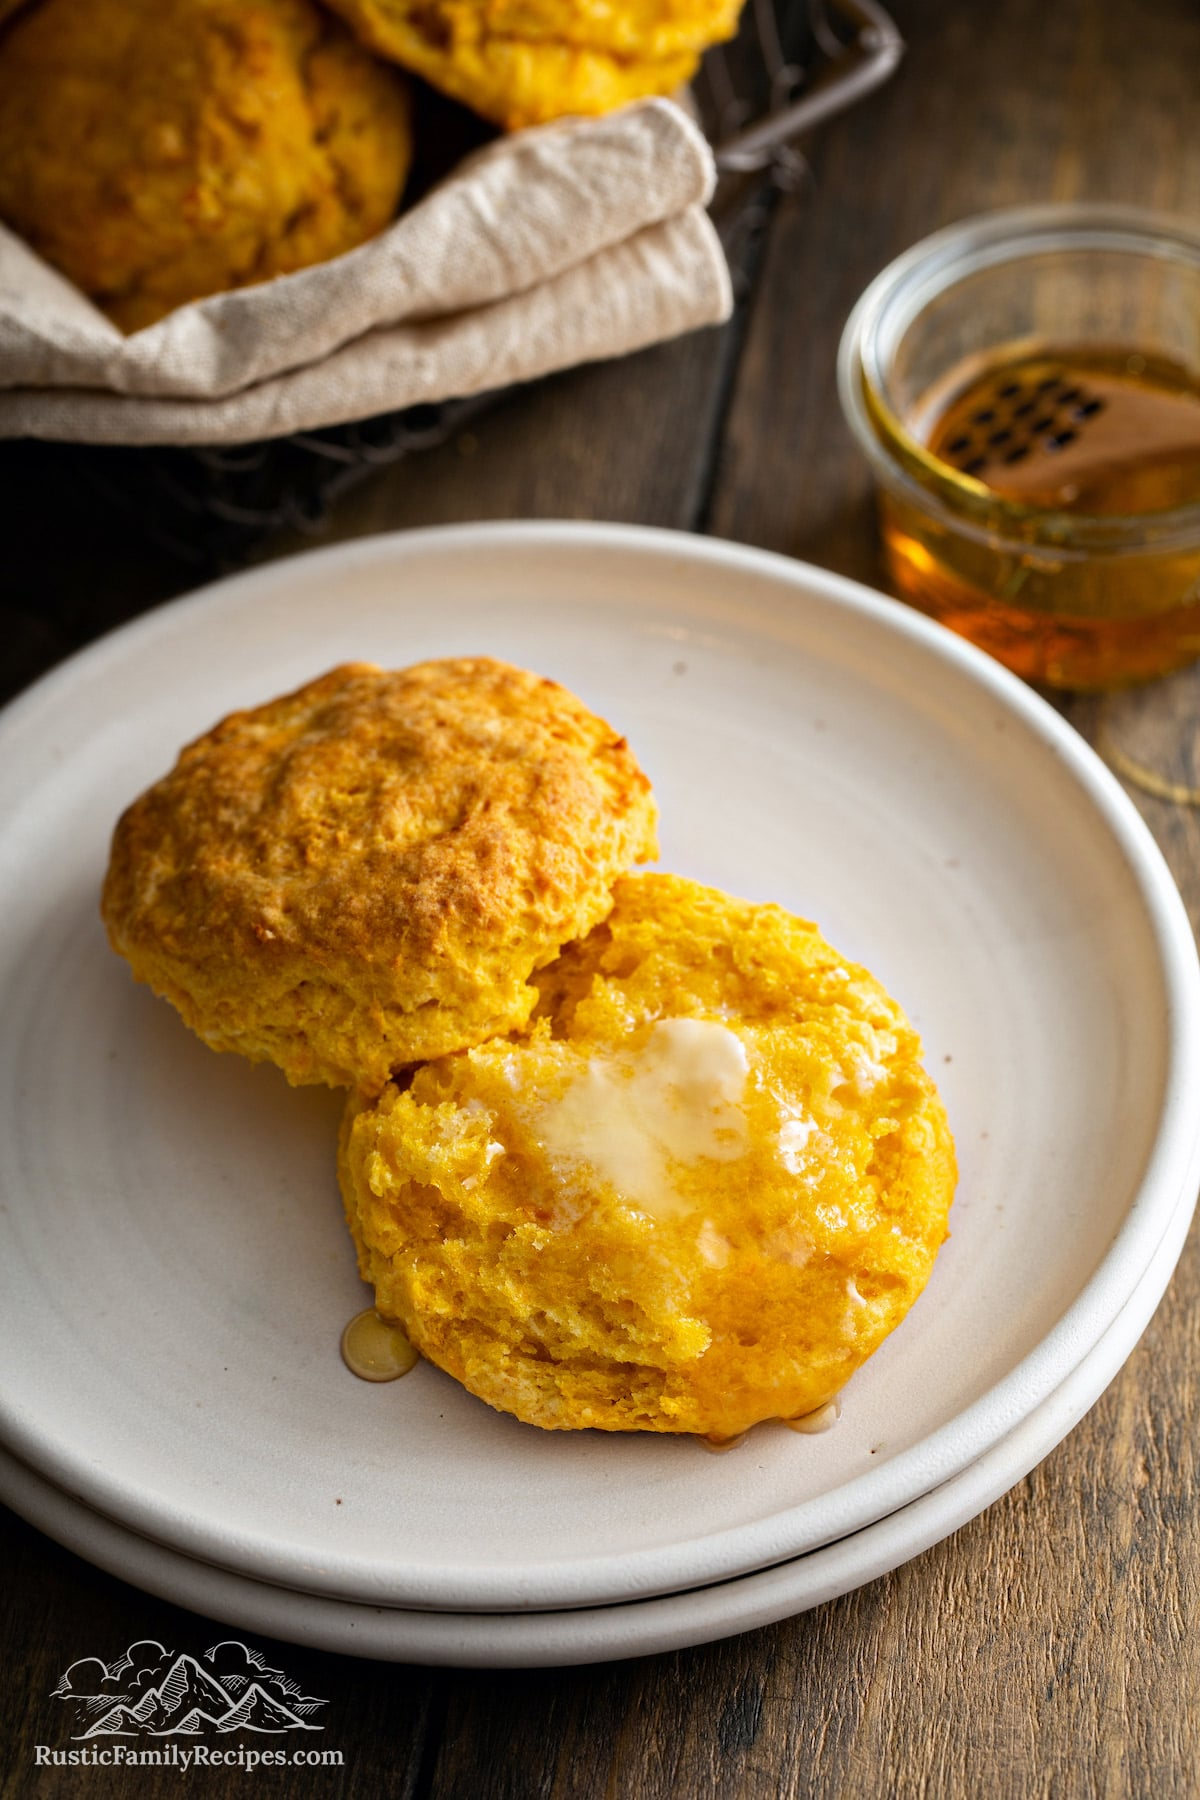 Sweet Potato Buttermilk Biscuit cut in half, topped with melted butter